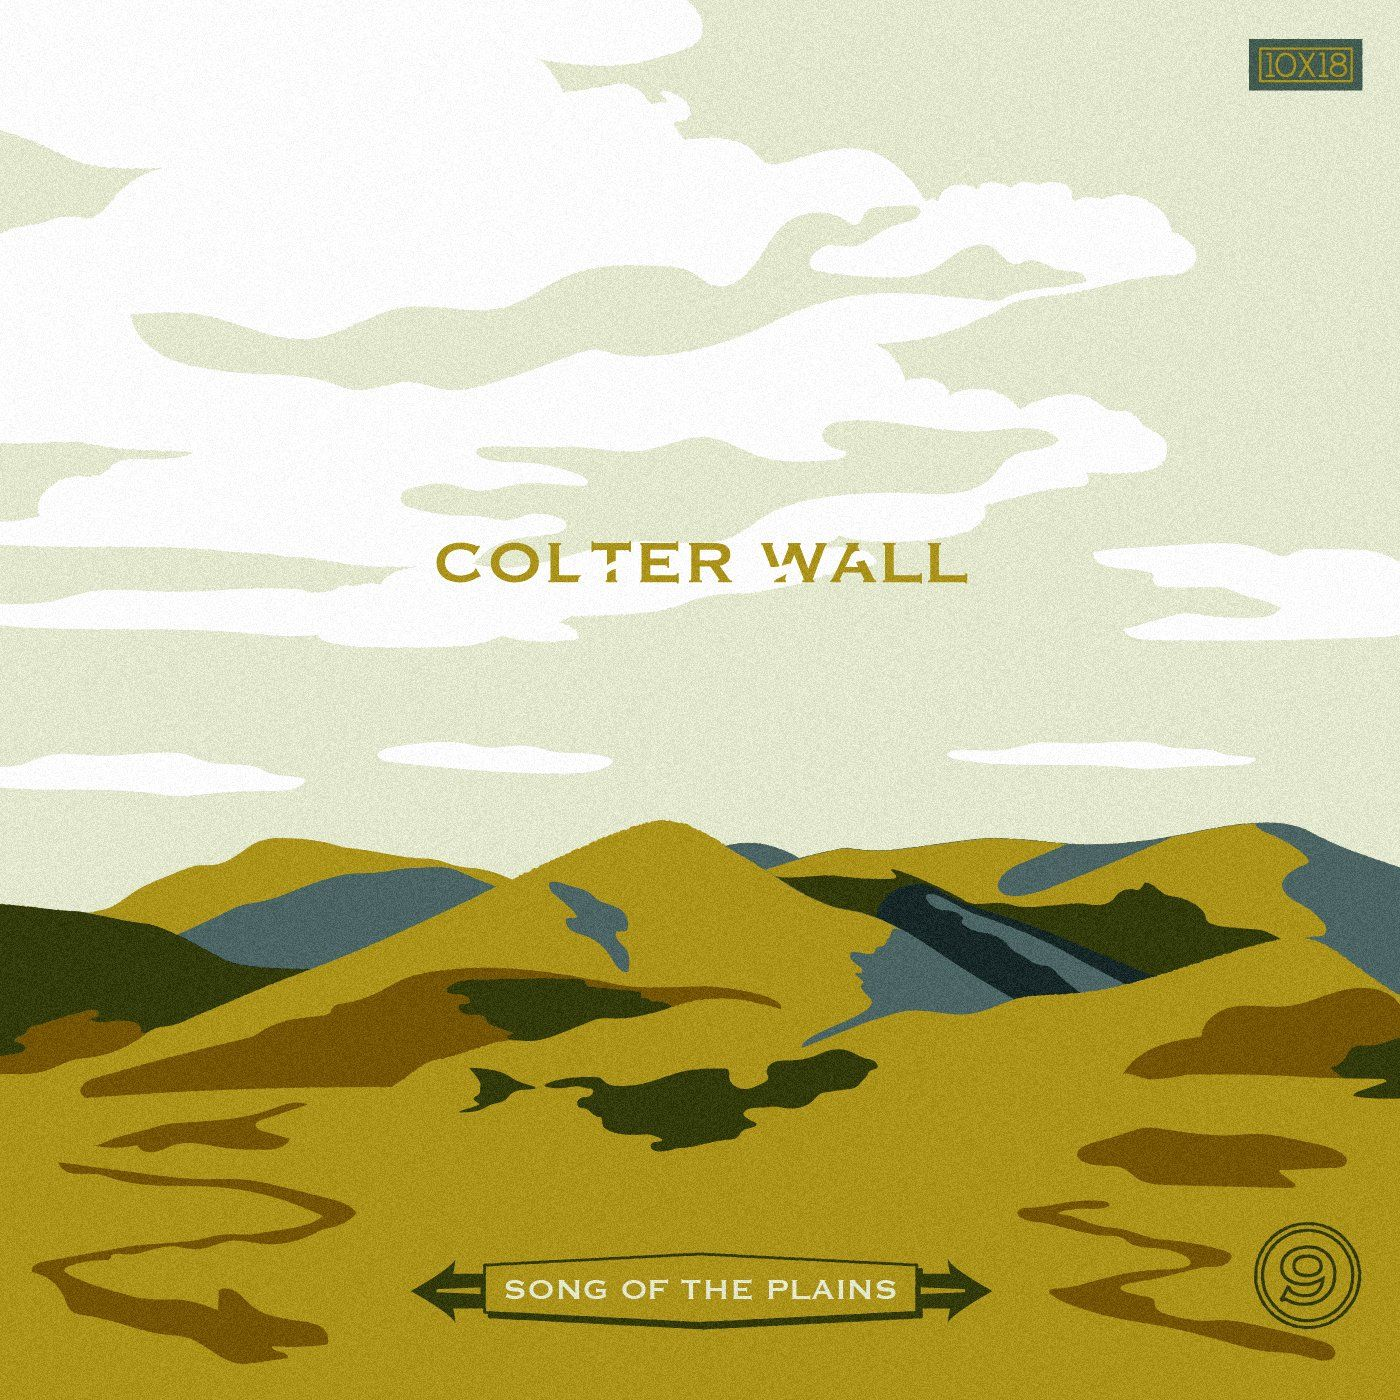 day 9 10x18 wall songs west art illustrations posters on colter wall id=34648